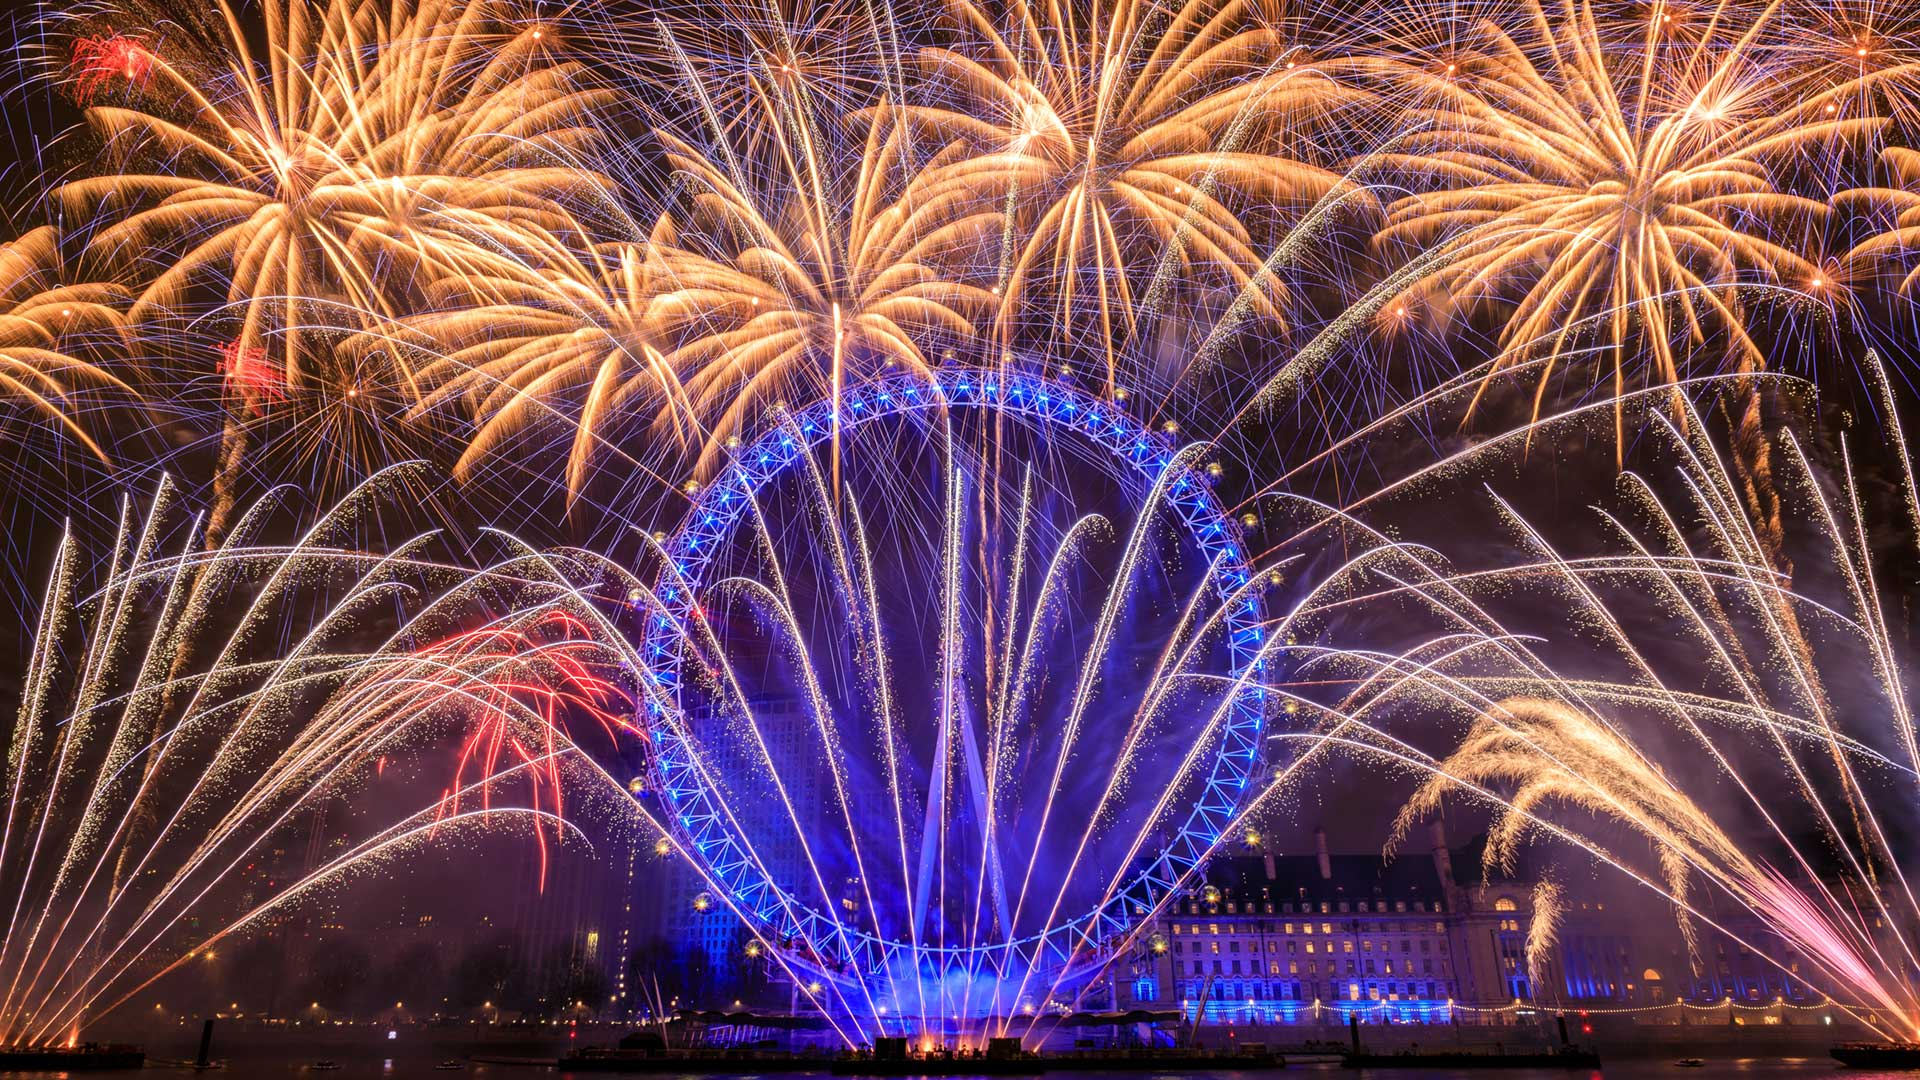 London Eye ferris wheel lit by blue lights with a golden fireworks display surrounding it against the night sky